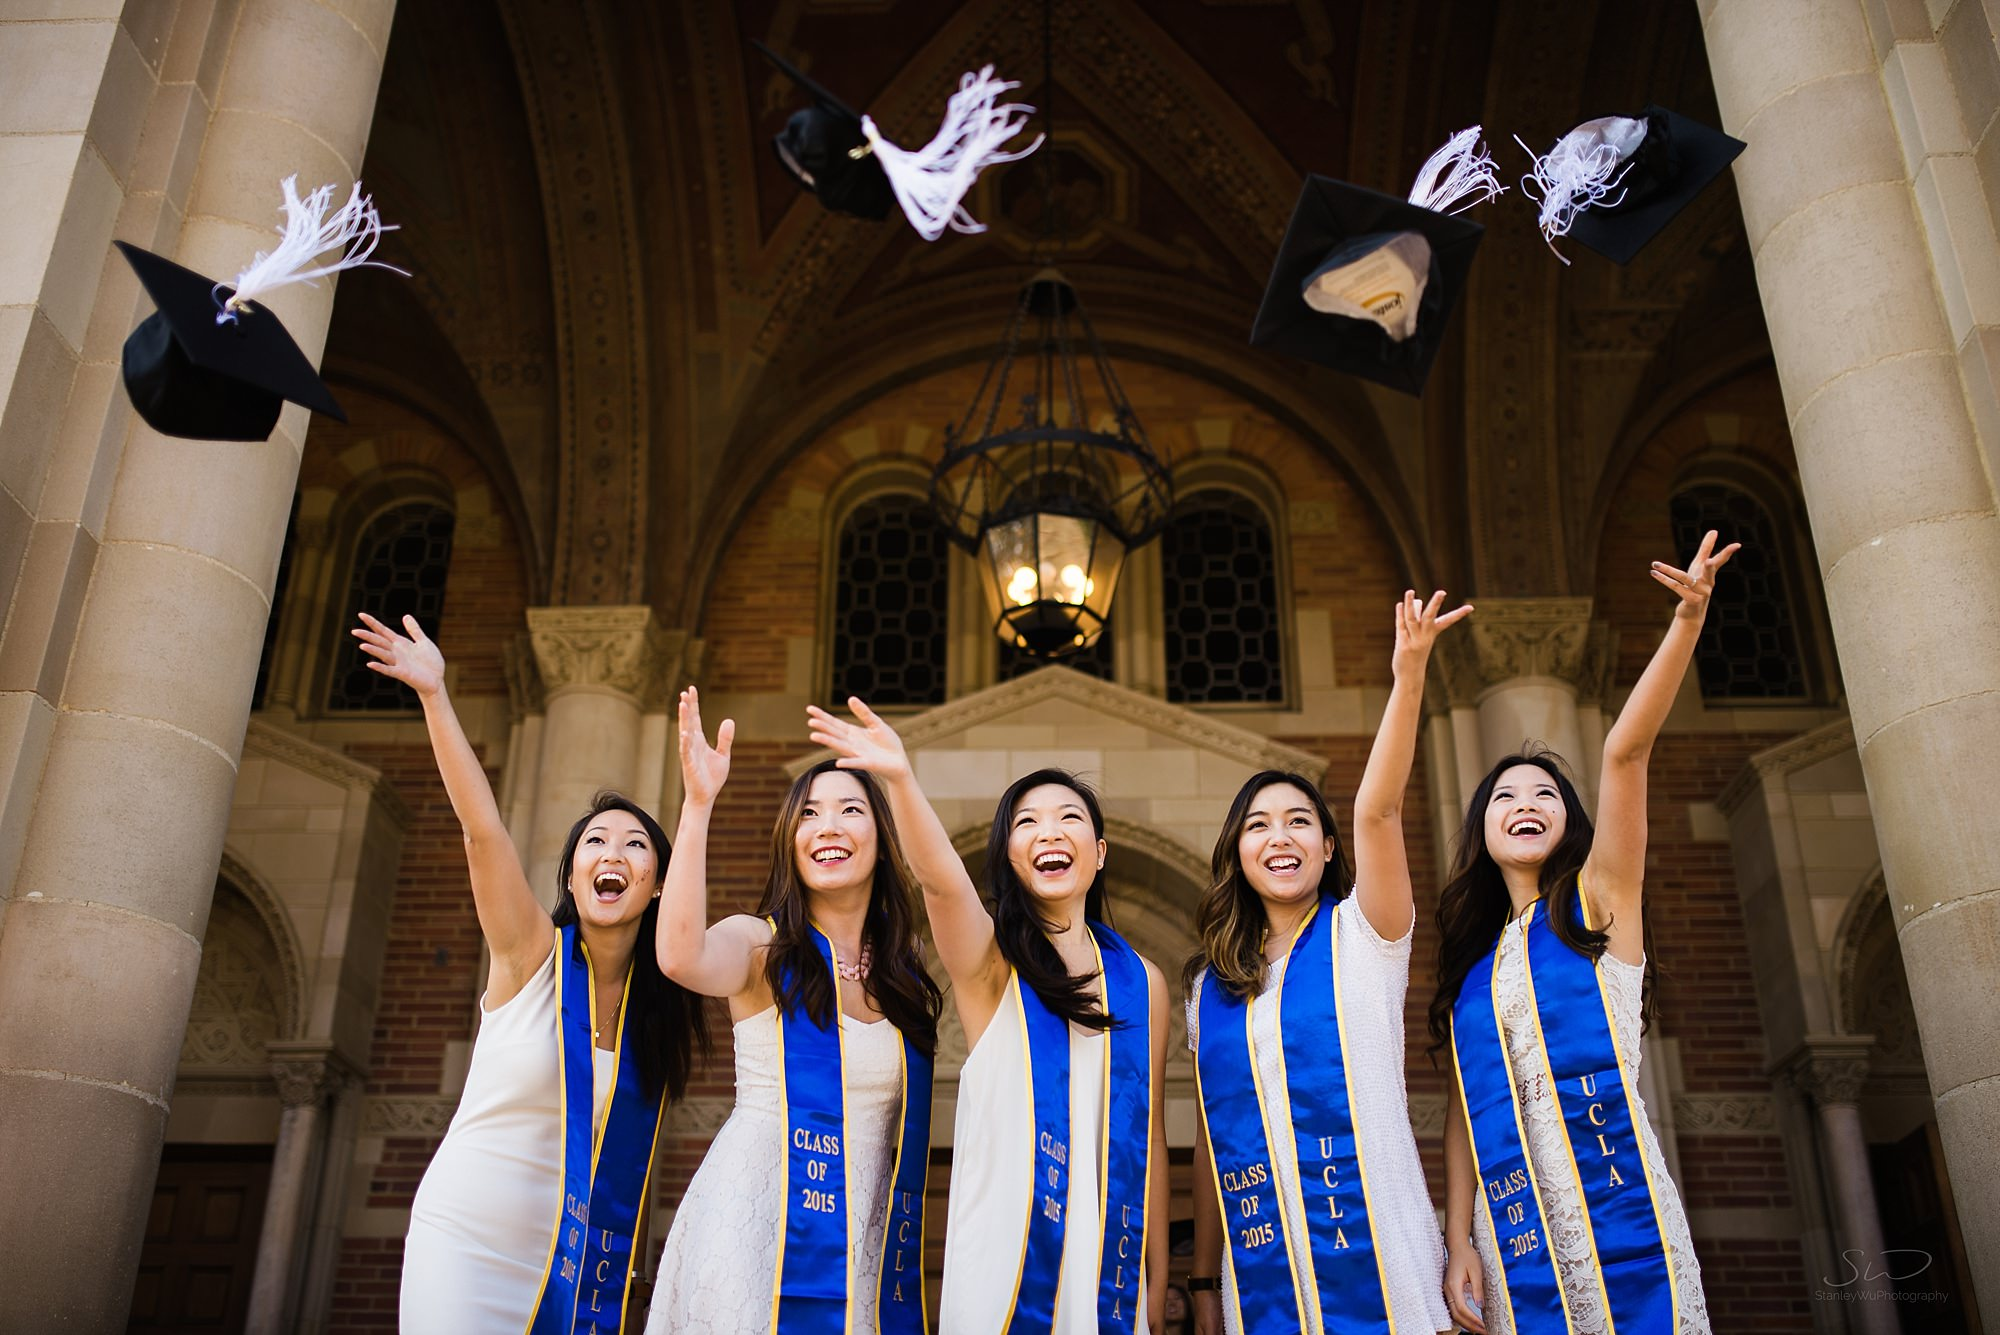 los angeles graduation senior portrait ucla akpsi girls throwing caps in the air